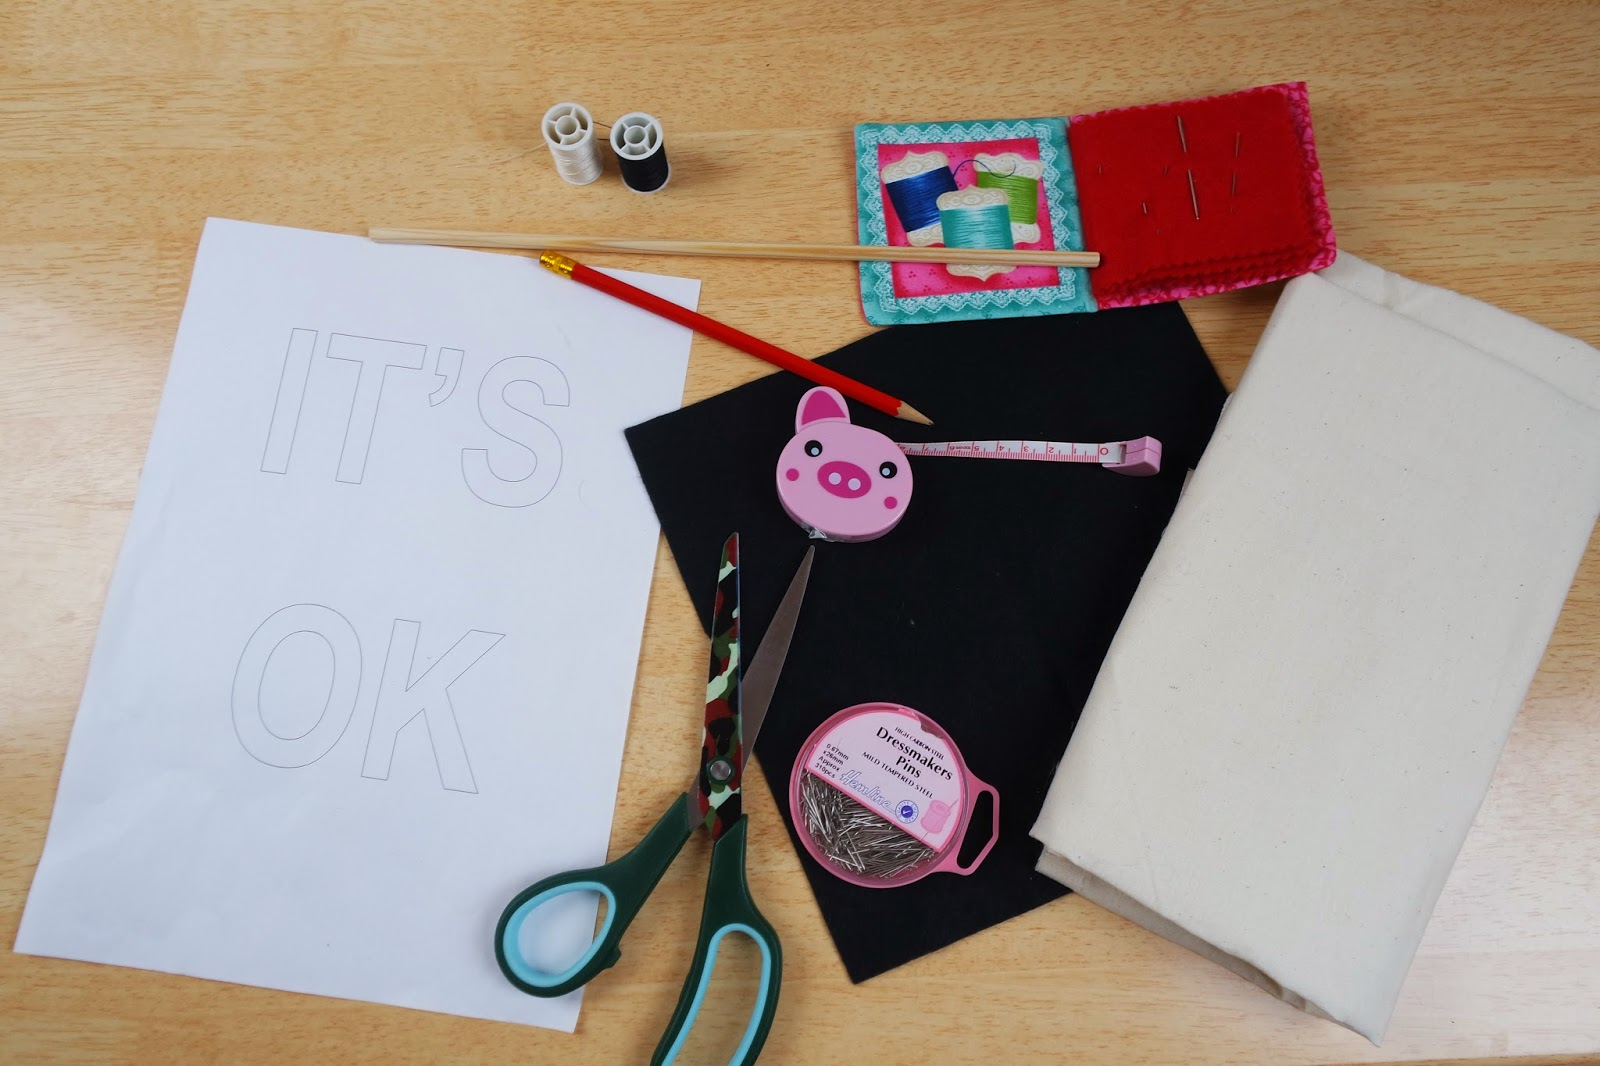 materials to make an it's ok banner